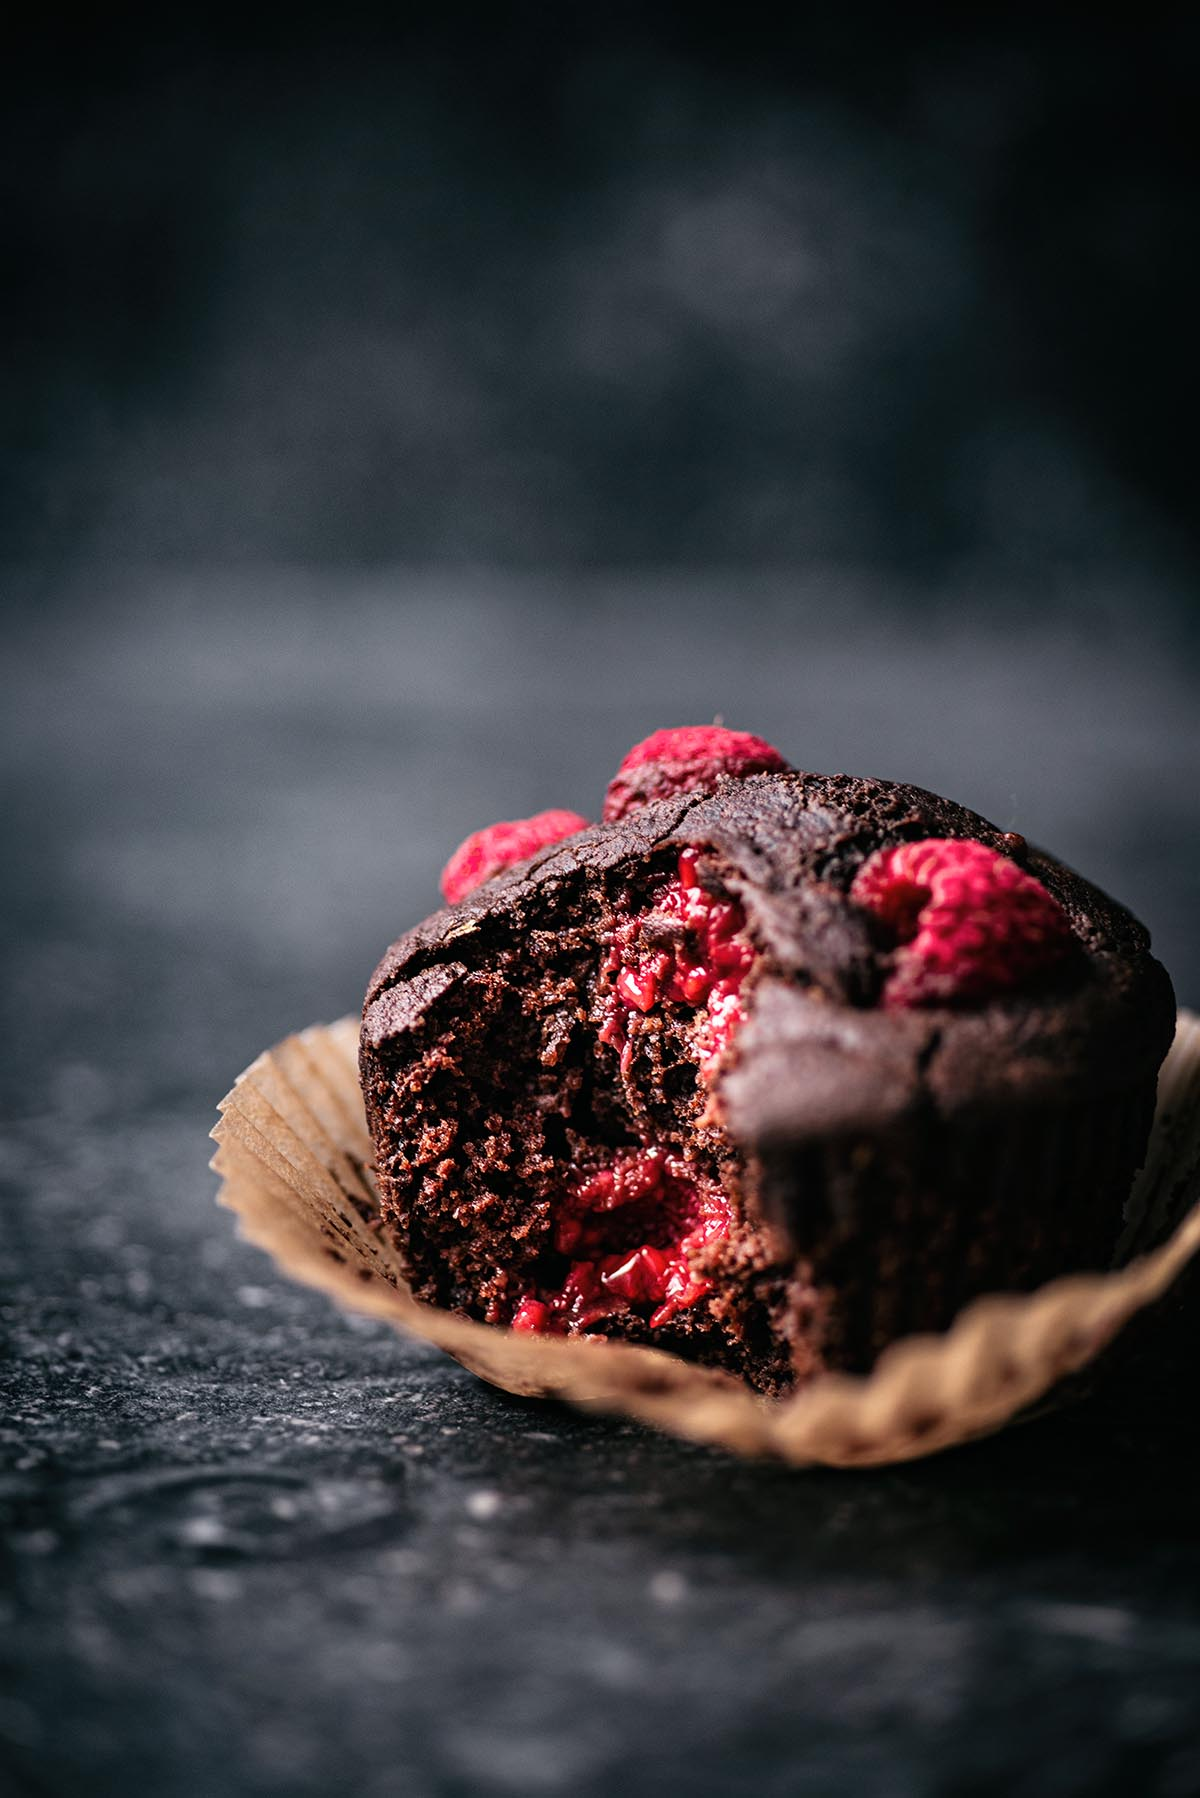 Chocolate raspberry muffin with a bite taken out to show interior texture.